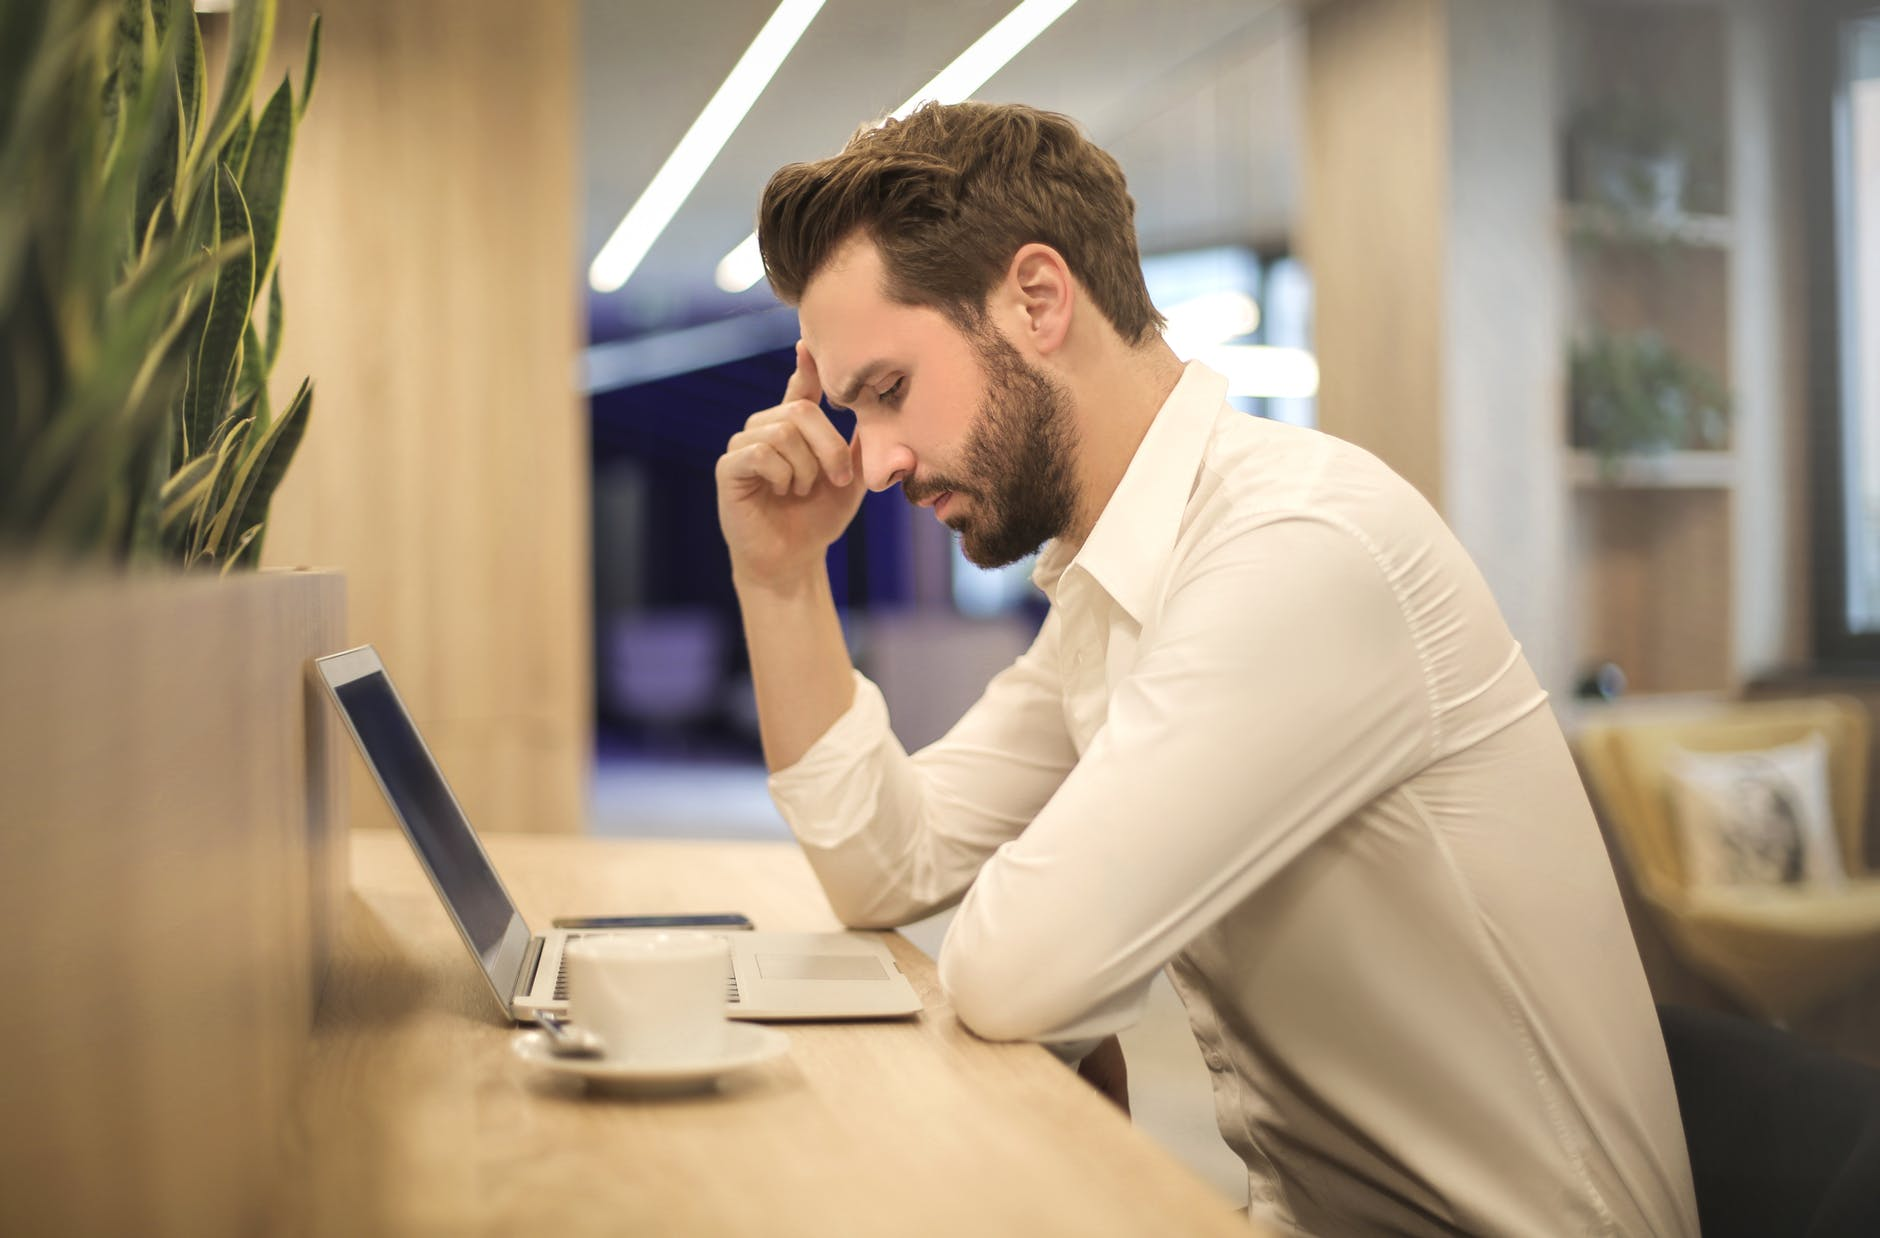 Working Long Hours 'Increases Your Risk Of Going Bald'